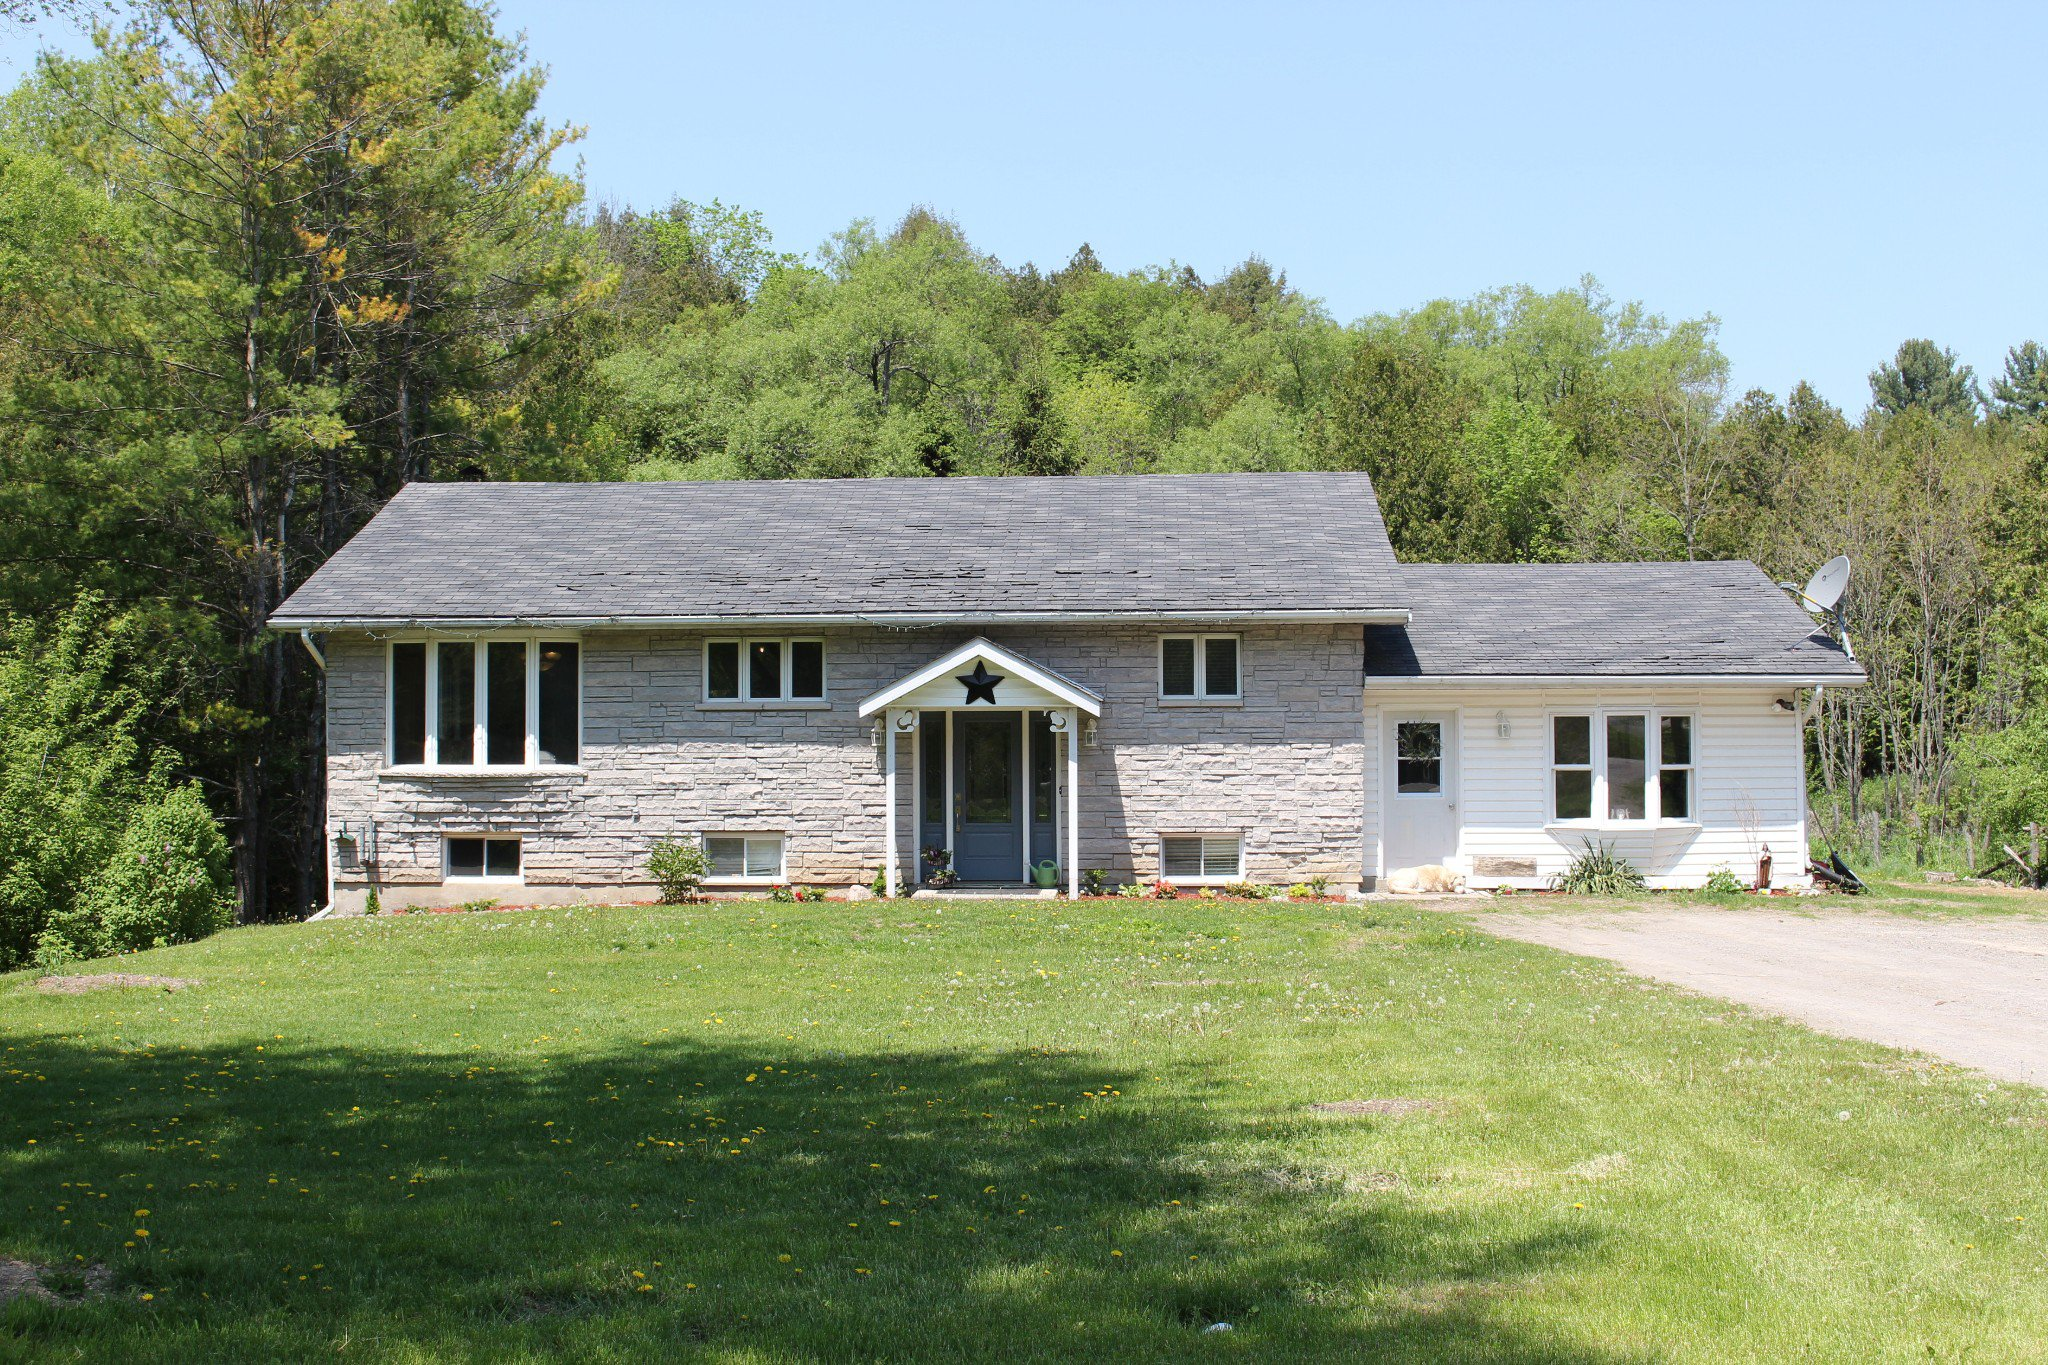 Main Photo: 2438 Shelter Valley Road in Vernonville: House for sale : MLS®# 129150